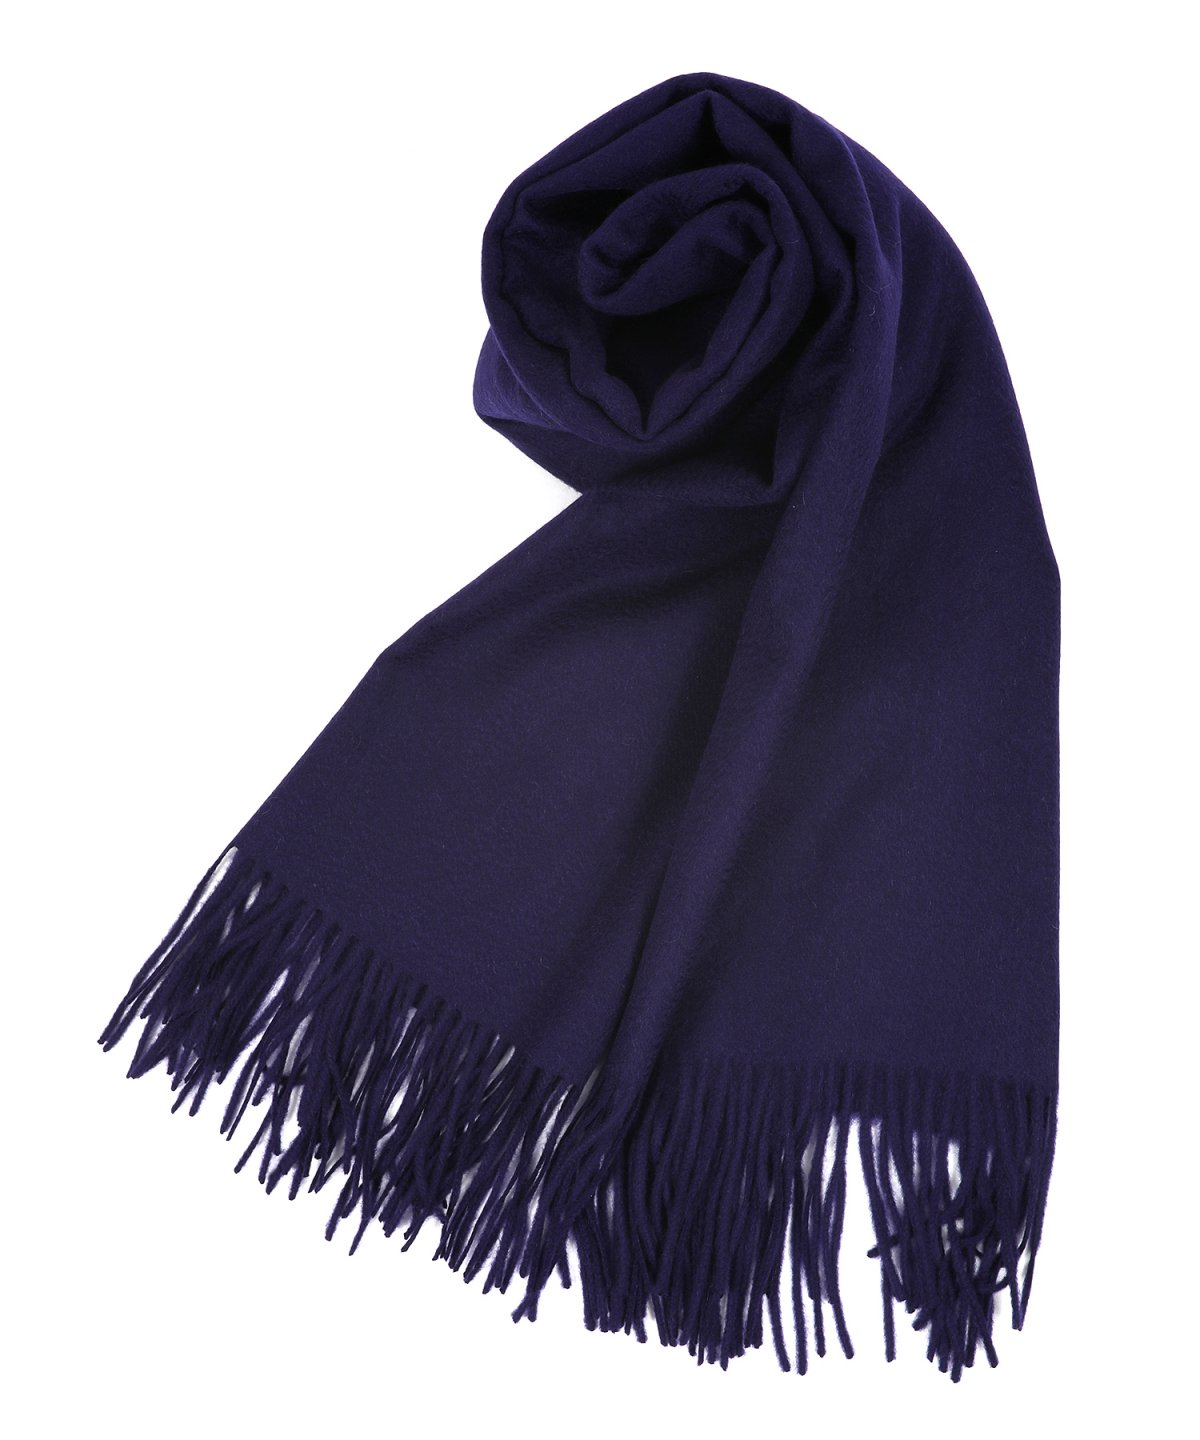 【SALE】- CASHMERE 100% - NAVY LARGE PLANE MUFFLER